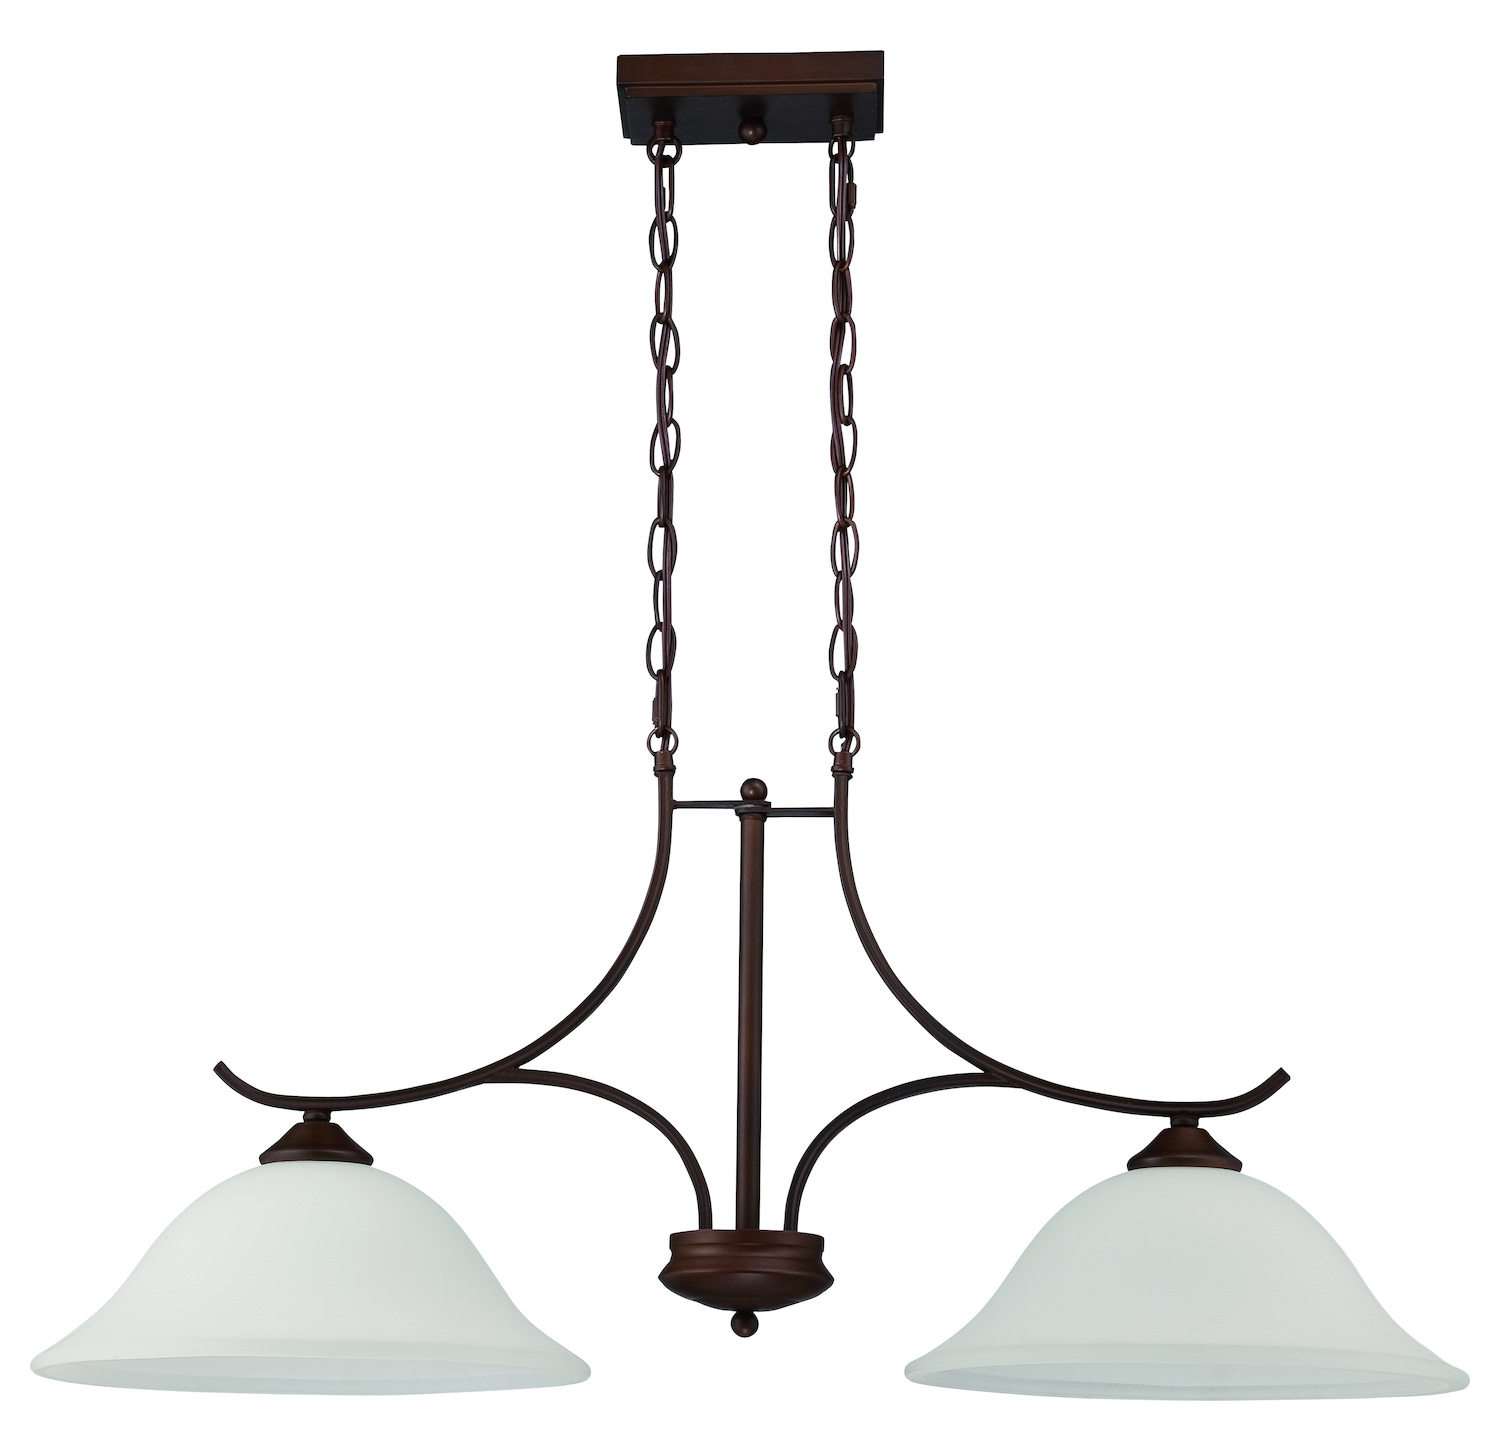 Pendant Island Lights Craftmade 2 Light Island Pendant In Oiled Bronze Finish